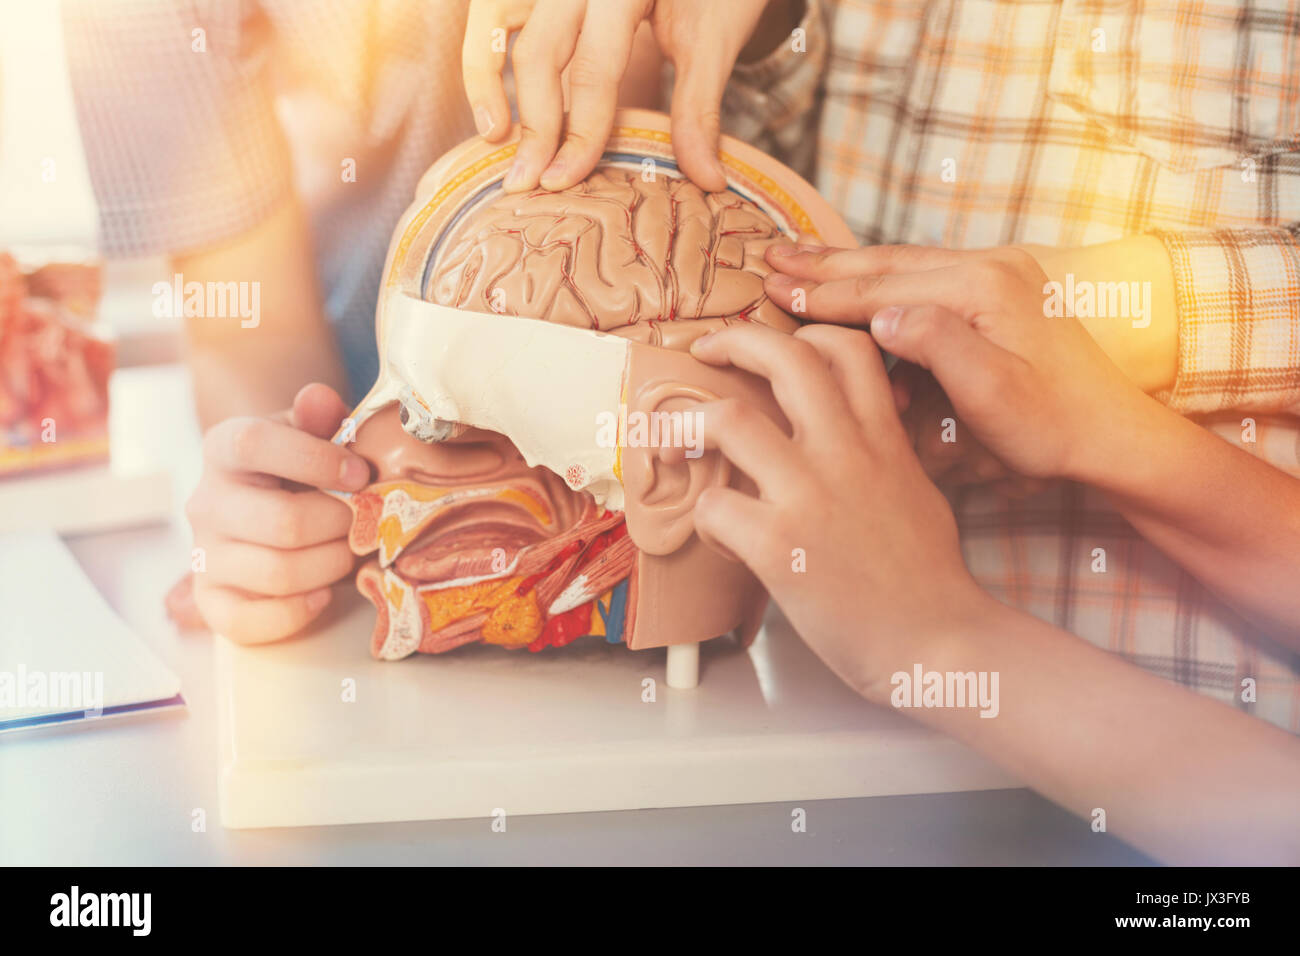 Close up of little hands that touching model of human brains - Stock Image